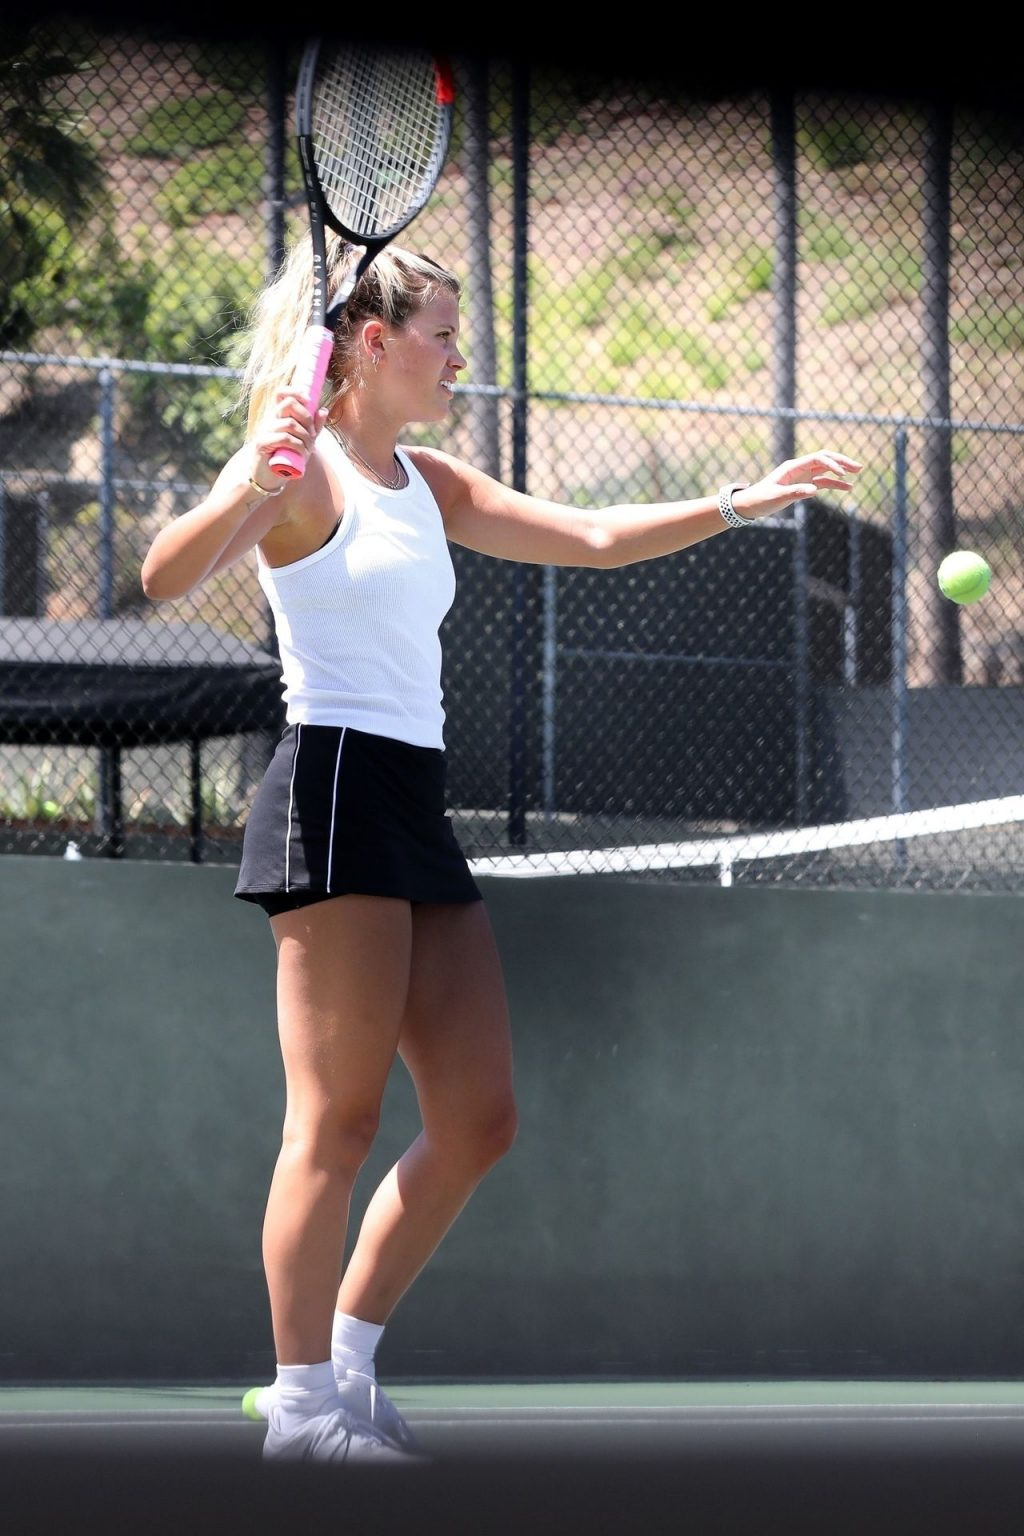 Sofia Richie Showcases Her Sporting Style During a Game of Tennis with Friends (20 Photos)